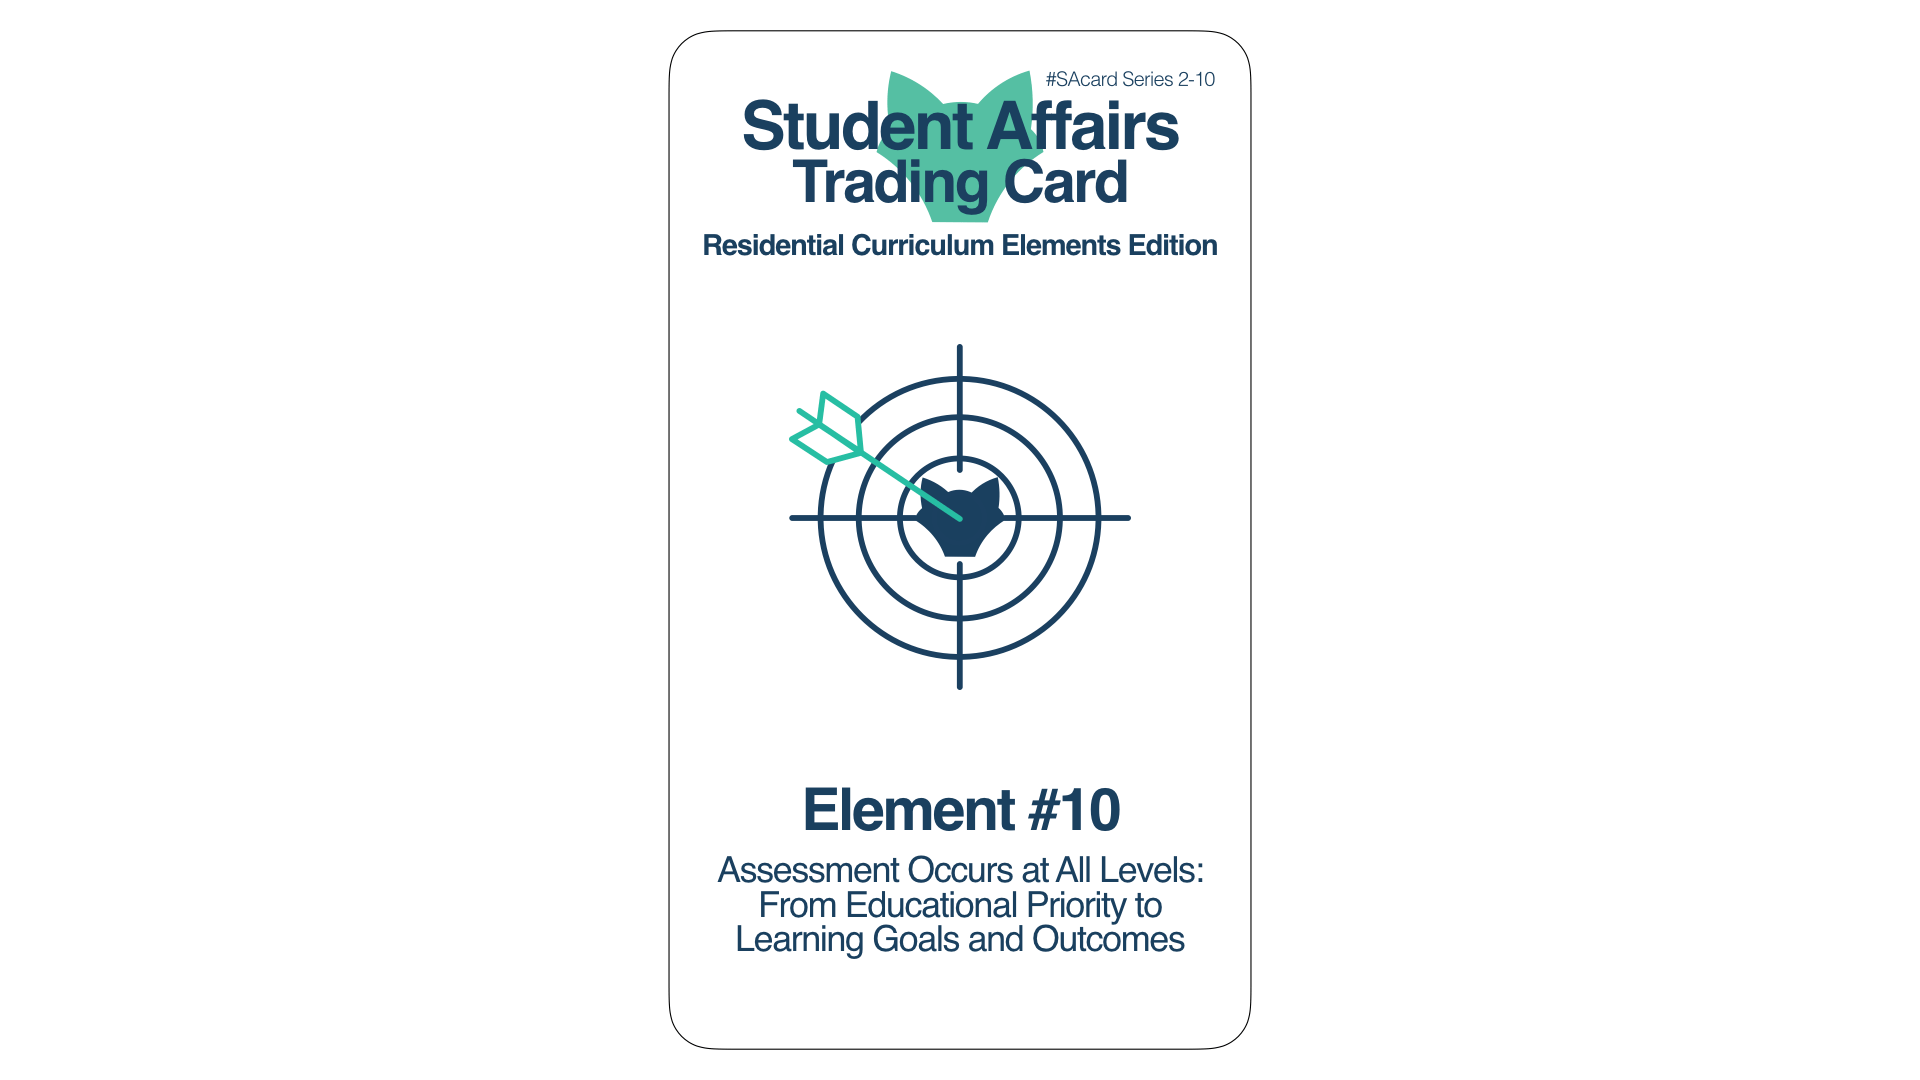 Student Affairs Trading Card 2-10: Residential Curriculum Element 10